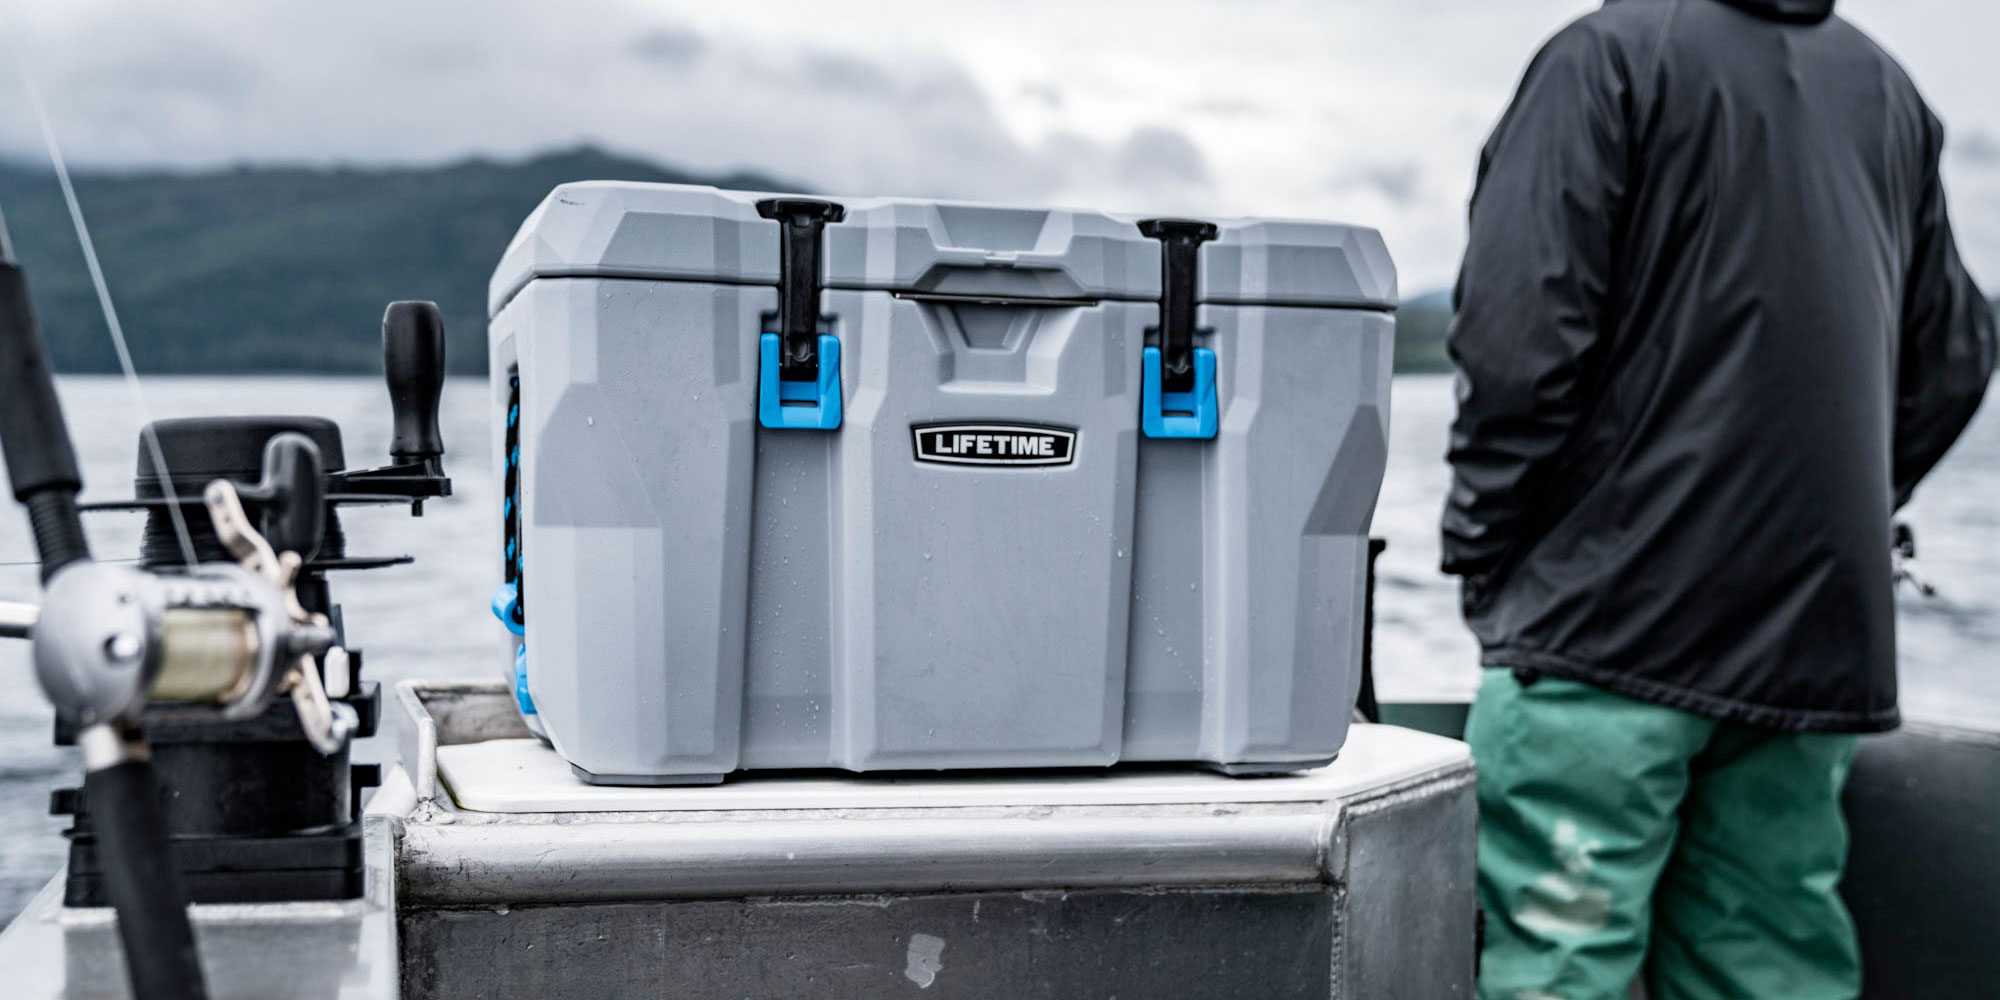 Lifetime's massive 55-quart cooler can keep ice for 7 days at $97 (Reg. $130)